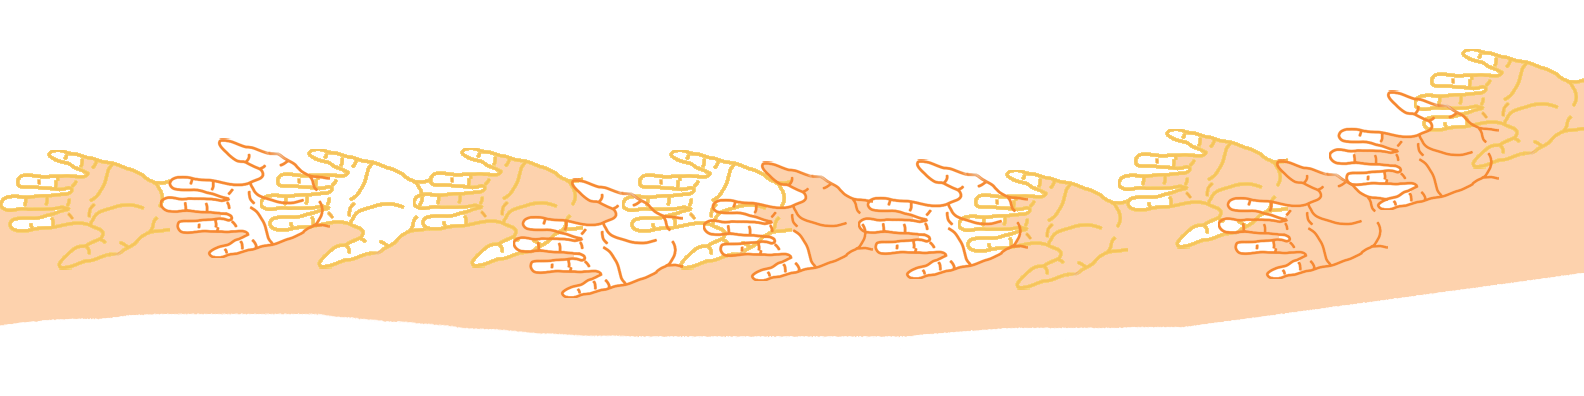 hands in a row2.png